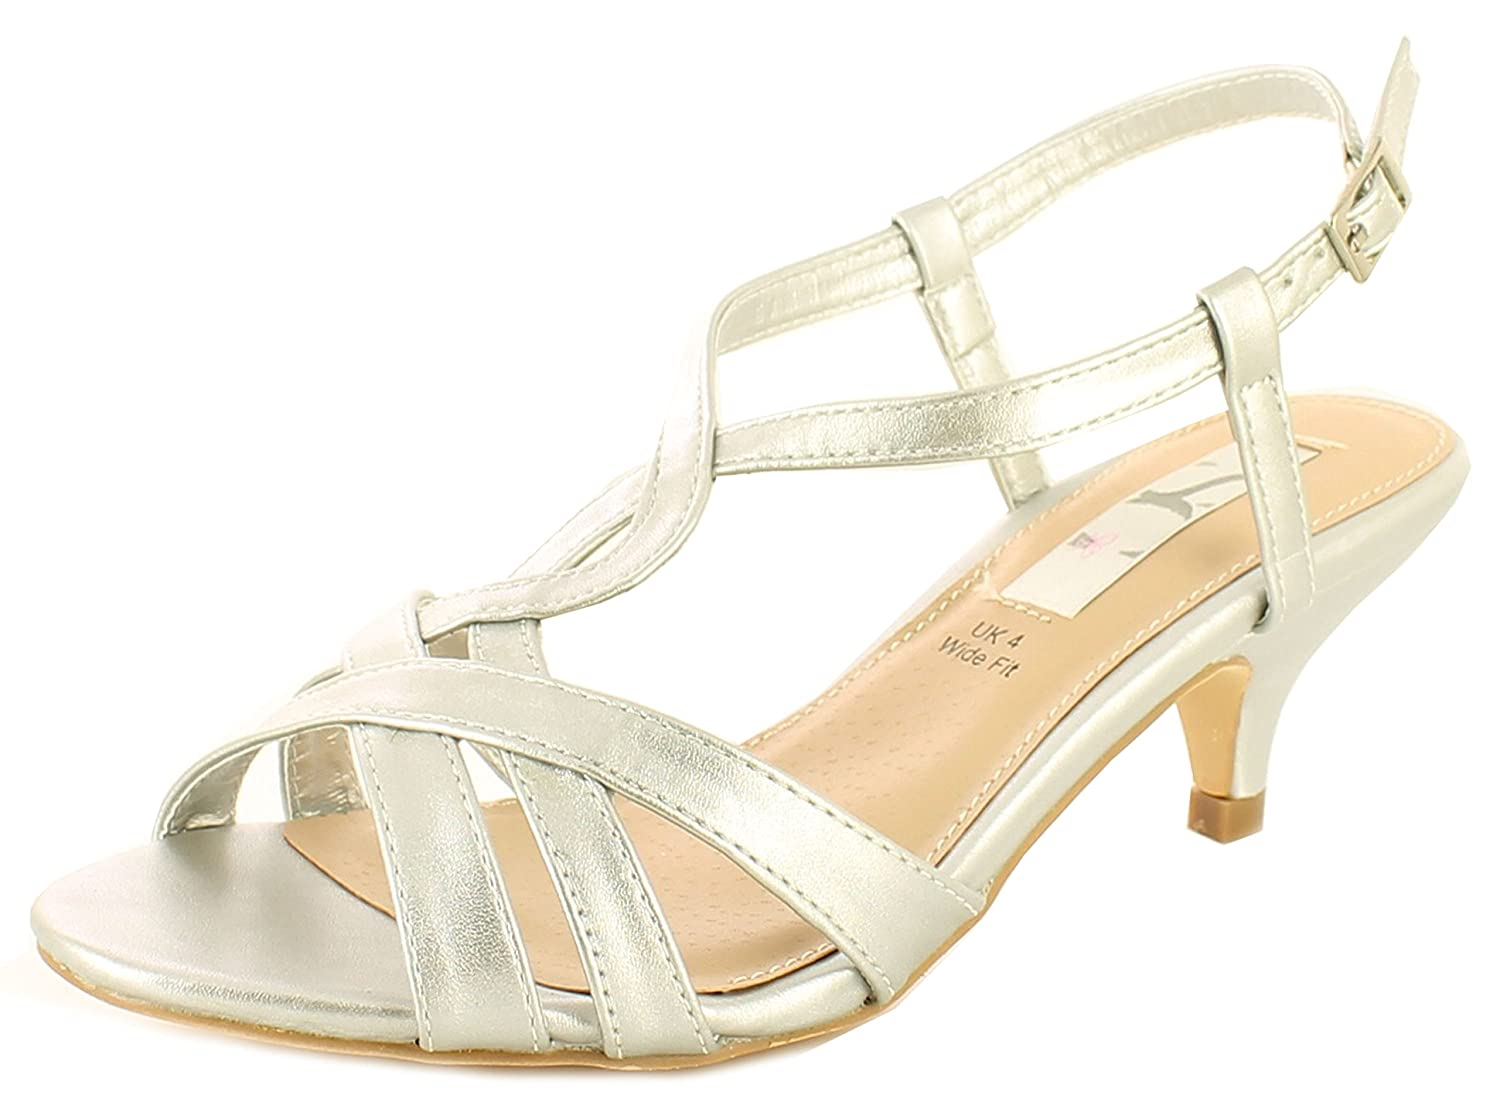 1b7c26a79a5 New Ladies Silver Wide Fitting Evening Occasion Wedding Shoes Sandals -  Silver - UK Size 7  Amazon.co.uk  Shoes   Bags